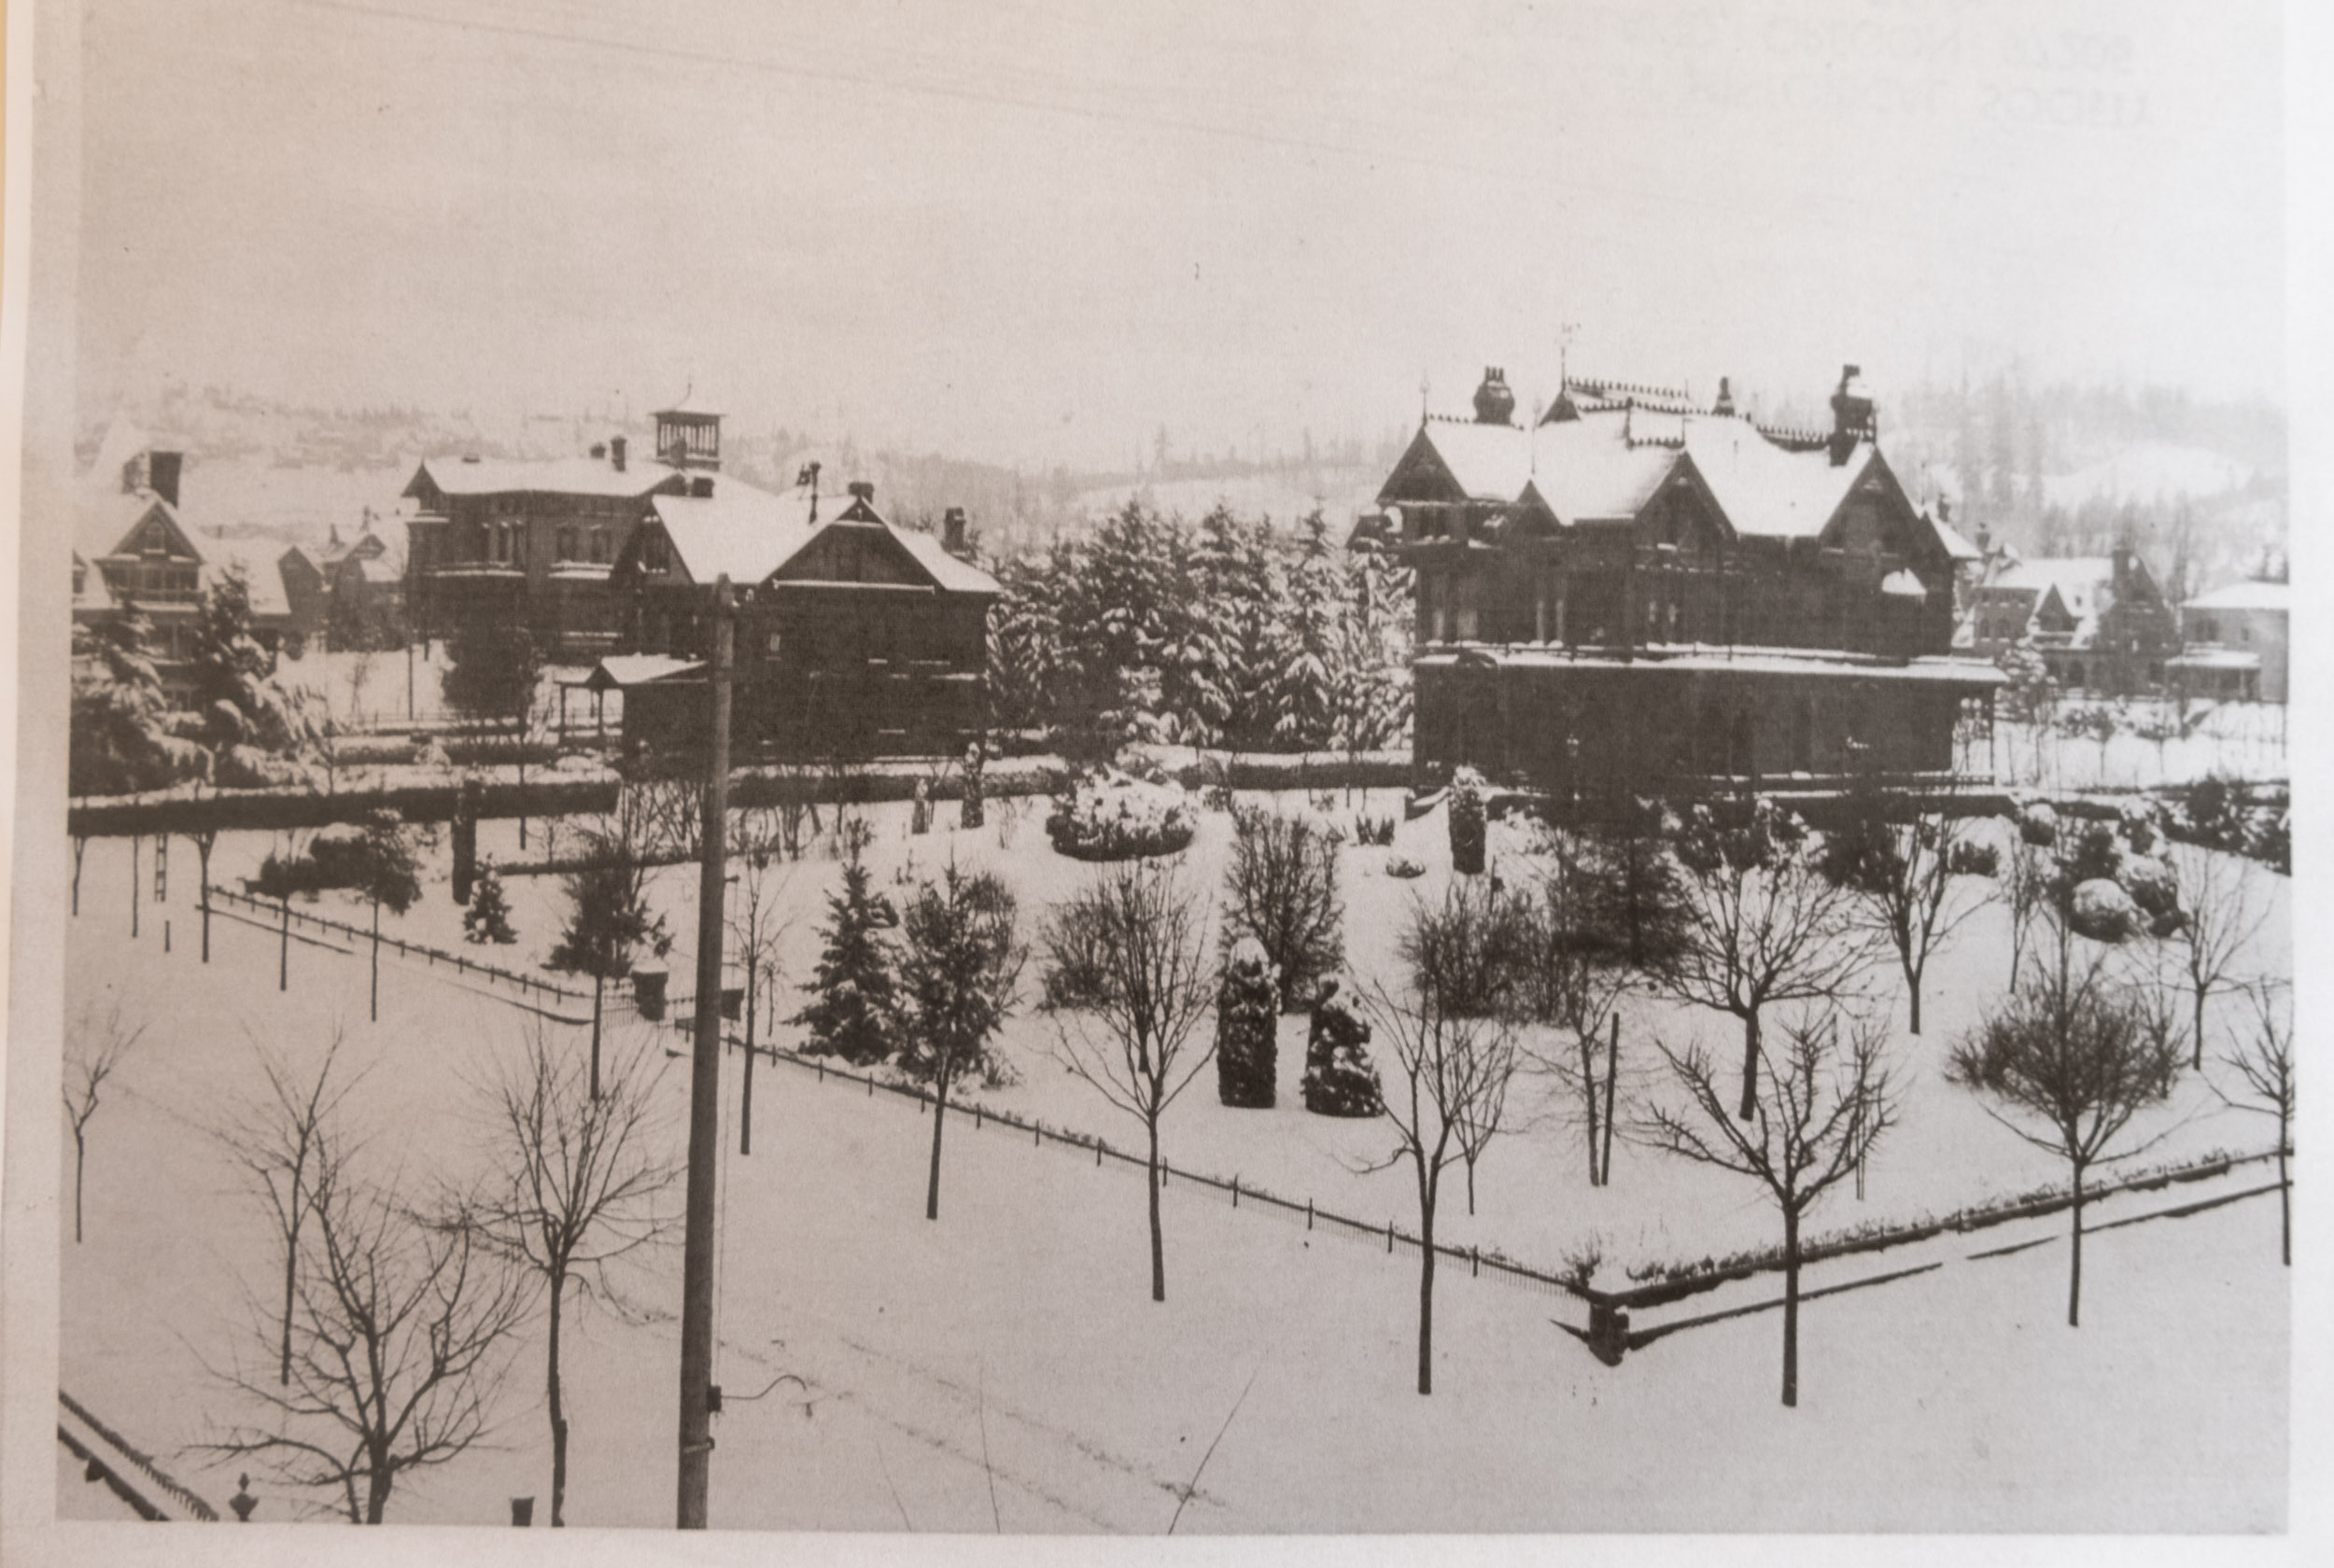 NW 19th Ave and NW Johnson Street, circa 1880s